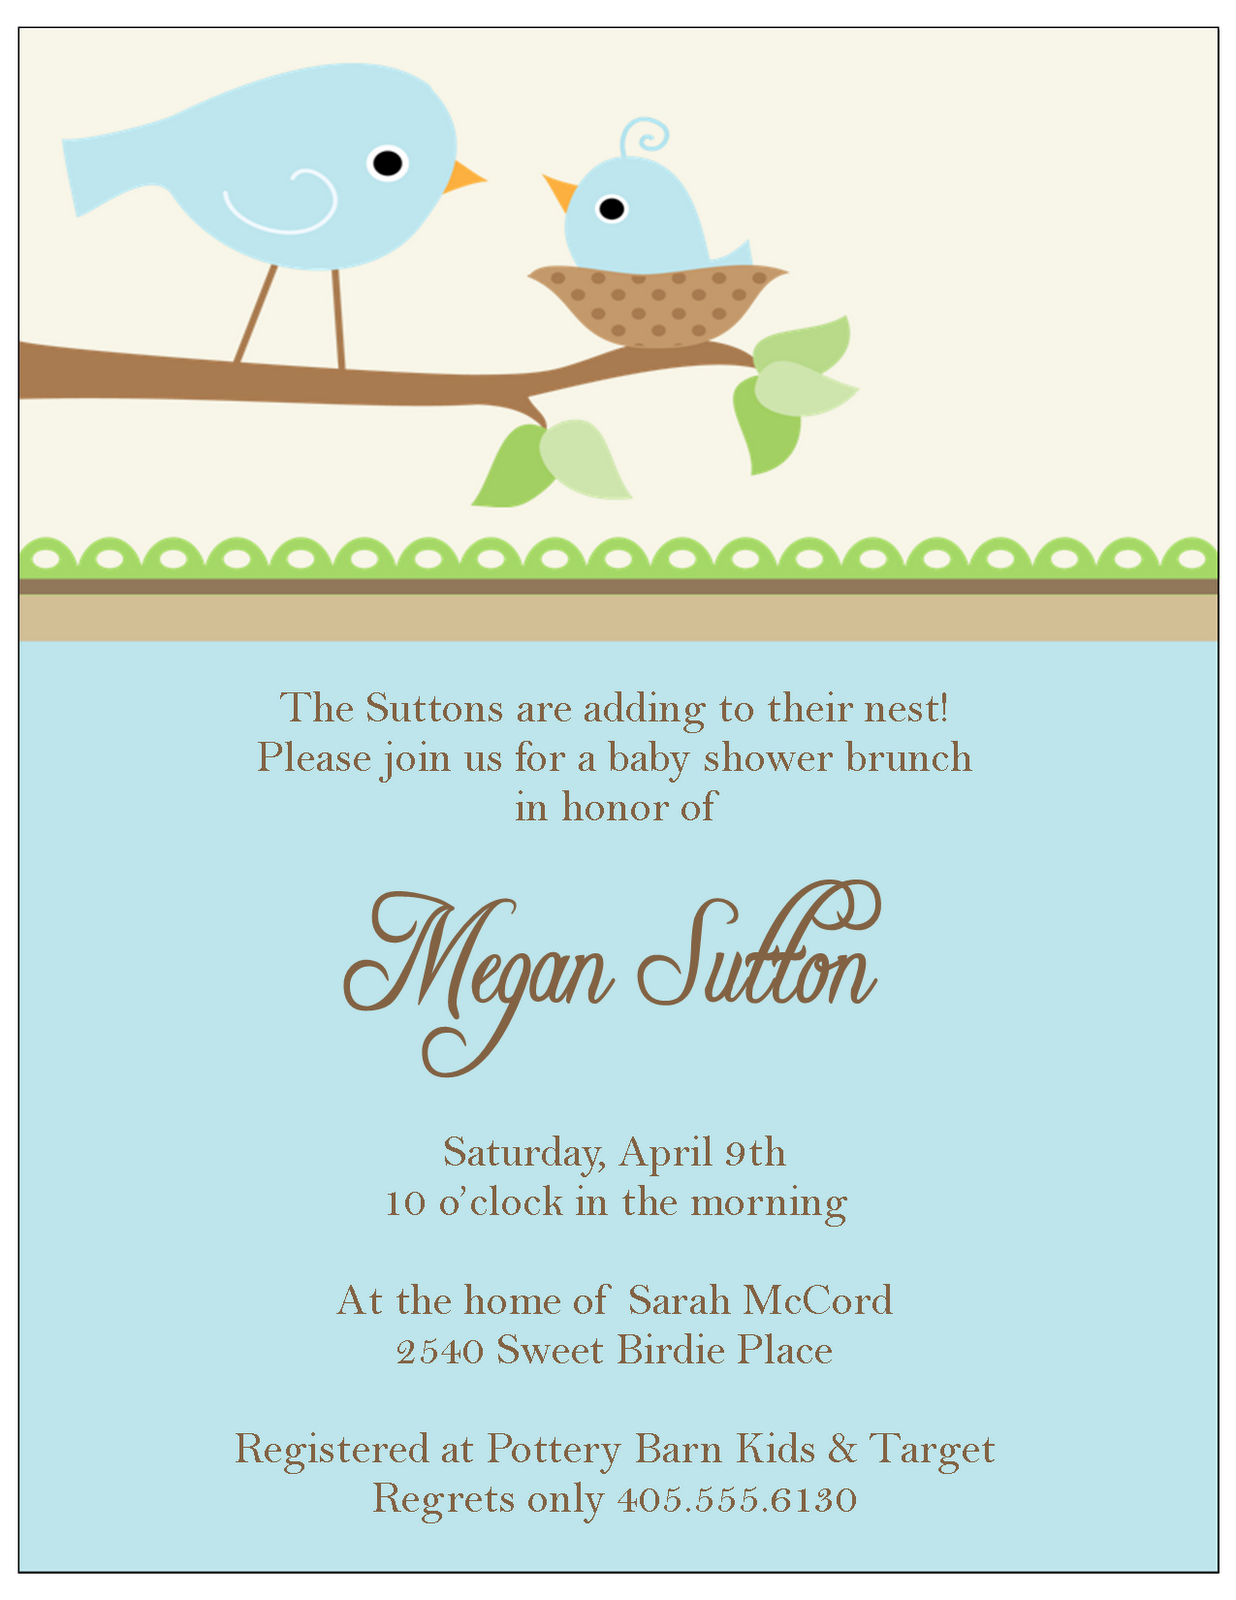 Little Bir Baby Shower Invitations Sweet Peach Paperie